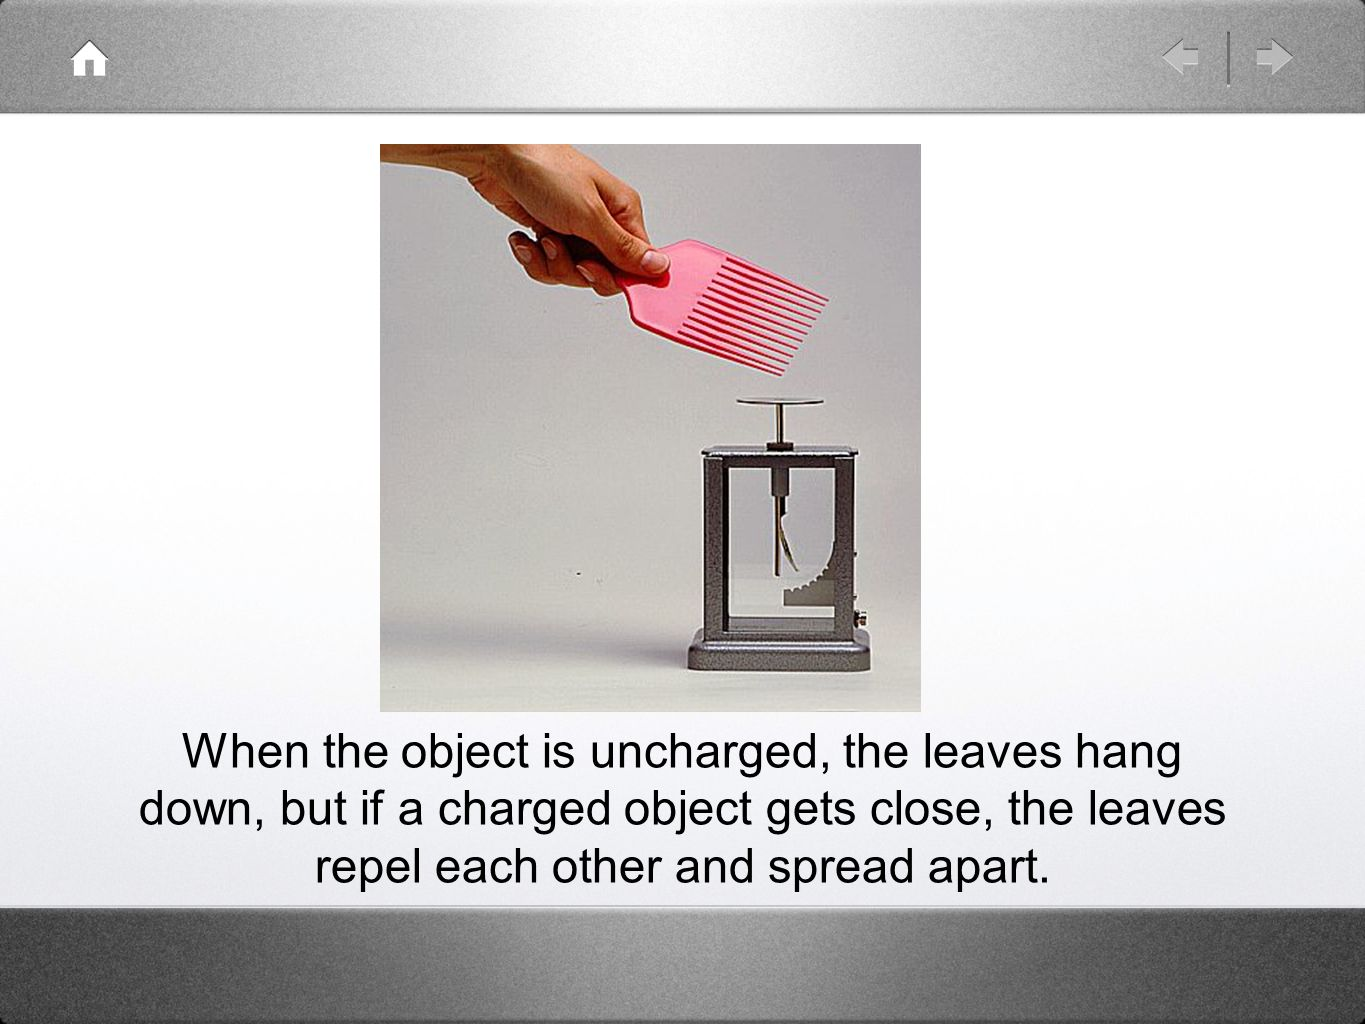 When the object is uncharged, the leaves hang down, but if a charged object gets close, the leaves repel each other and spread apart.